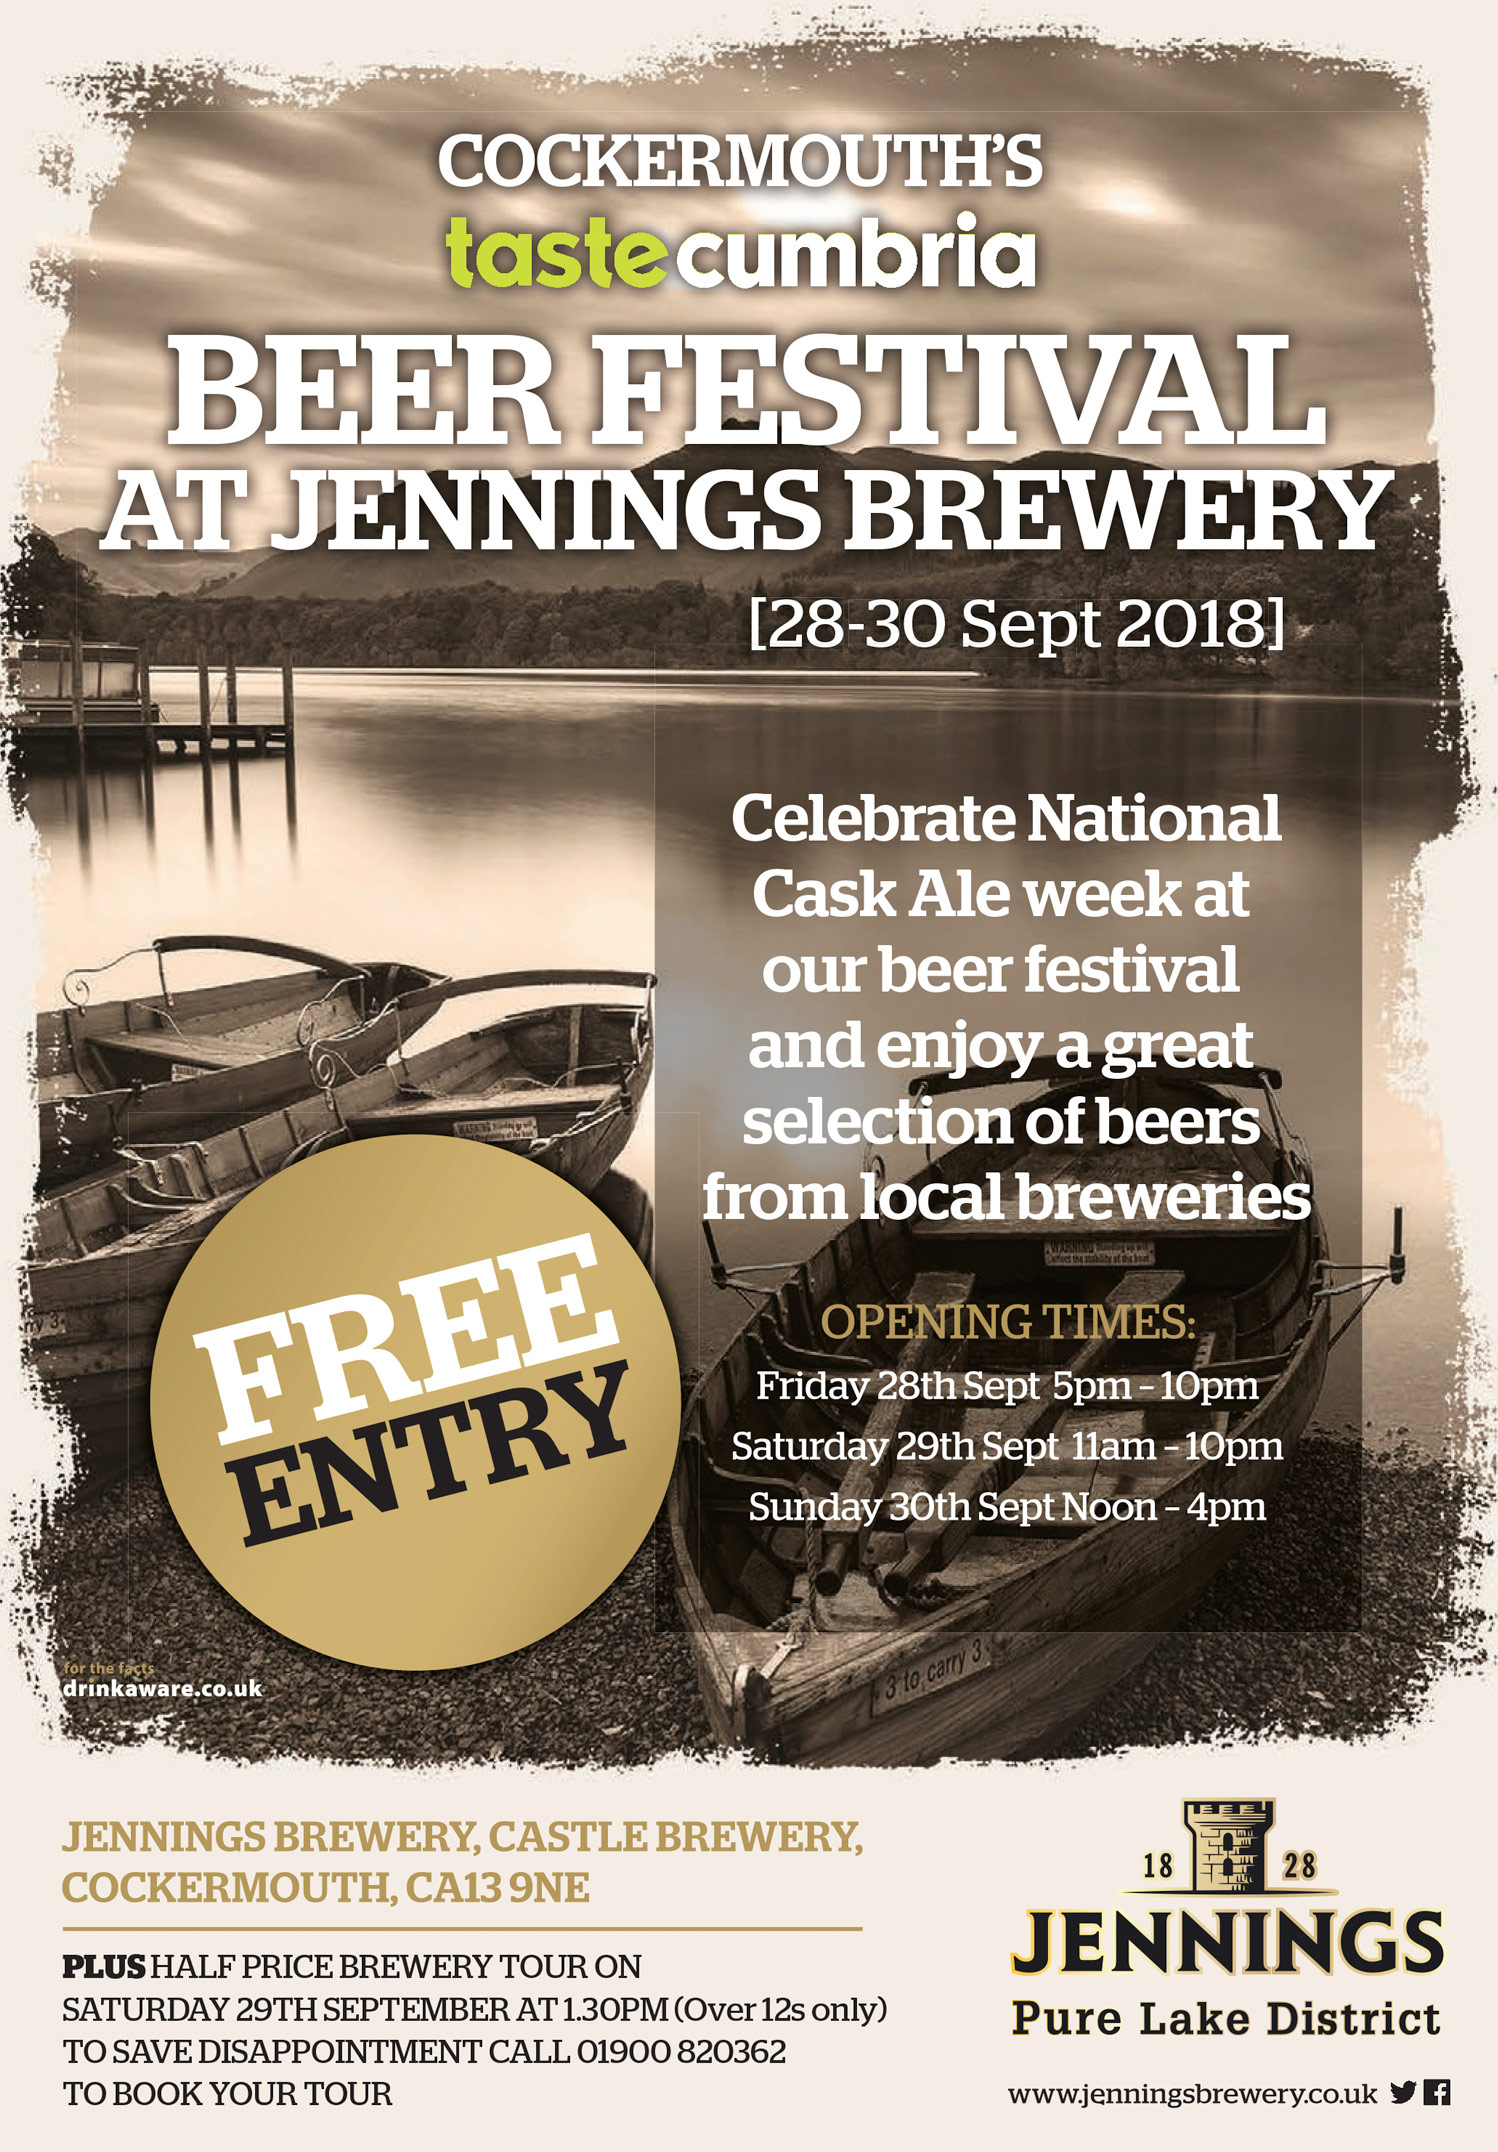 Beer Festival at Jennings Brewery